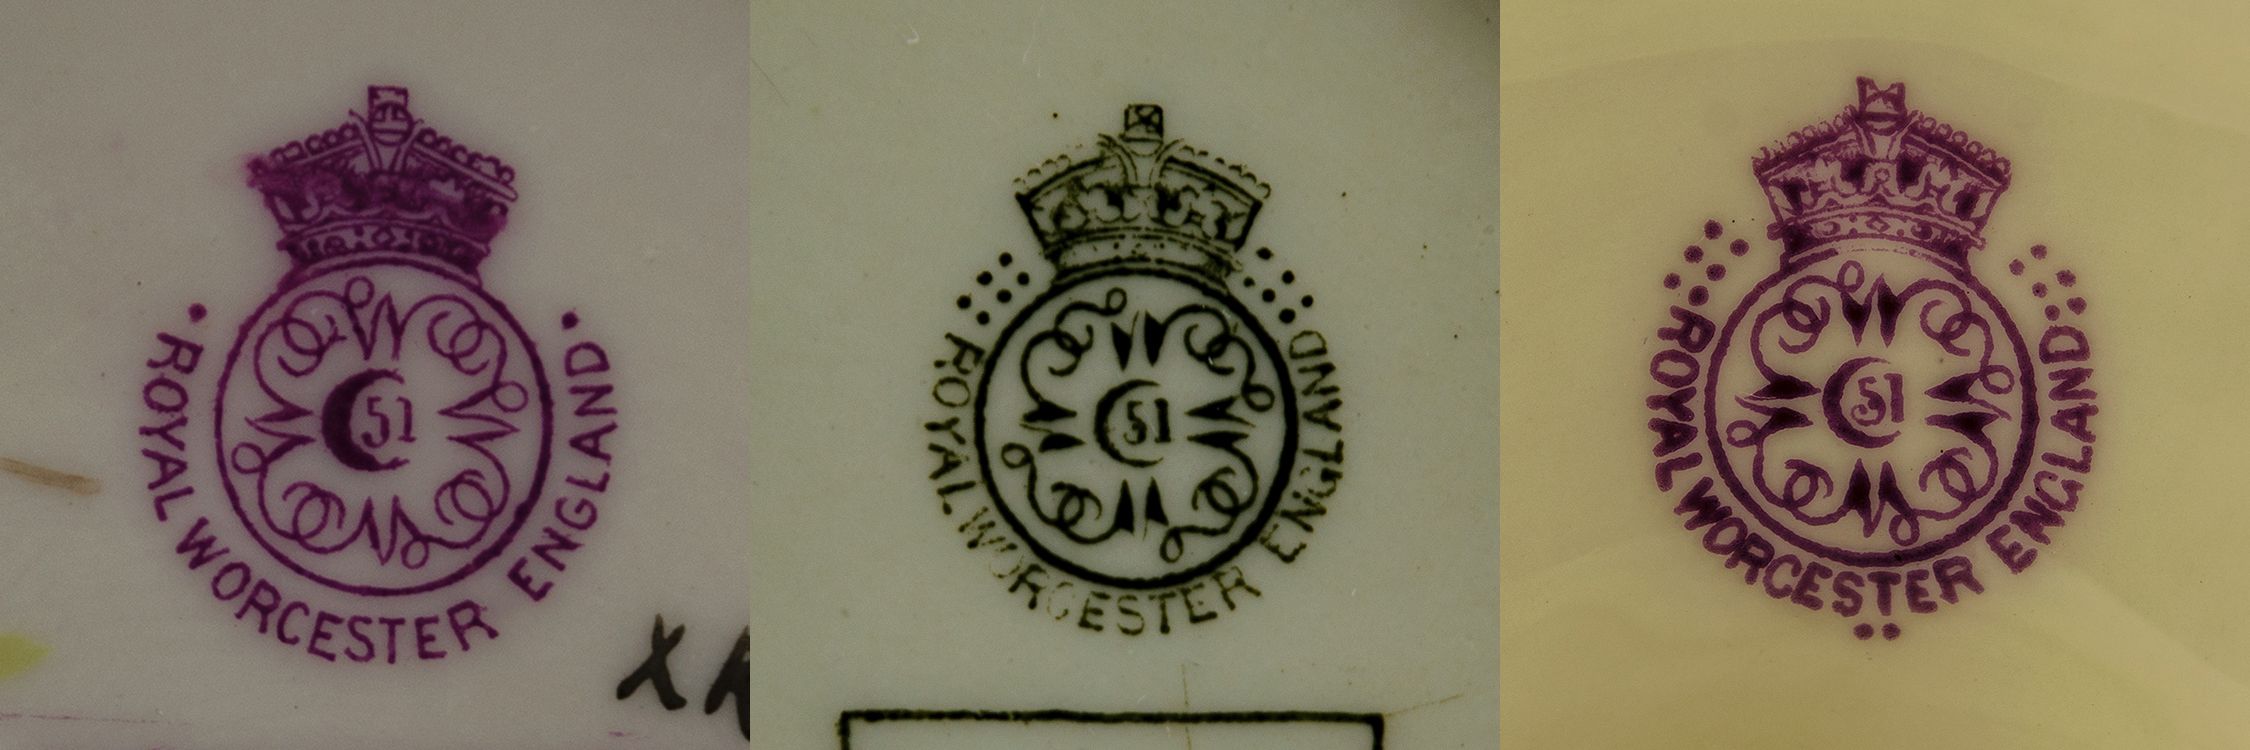 Royal Worcester date marks circa 1900, one with two dots for 1893, one with 12 dotes for 1903 and one with 14 dots for 1905